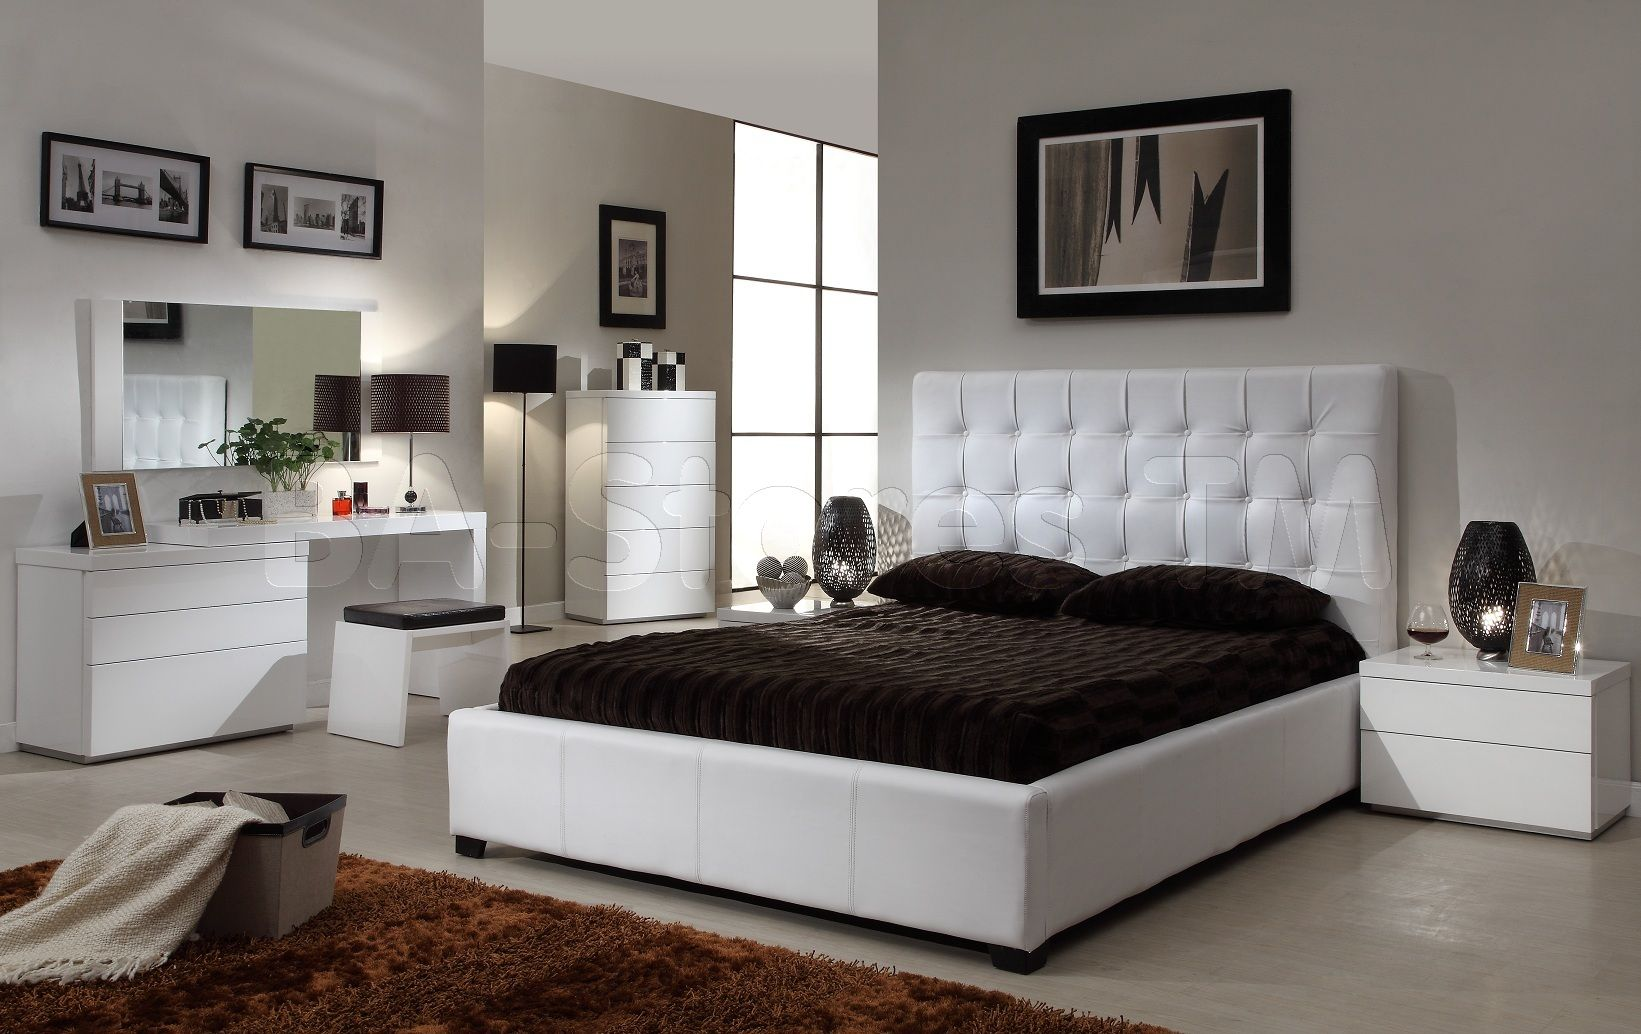 Athens 5 Pc White Bedroom Set Bed Nightstand Dresser Wall Mirror And Stool Athomeusa Schlafzimmer Design Schlafzimmermobel Schlafzimmer Wand